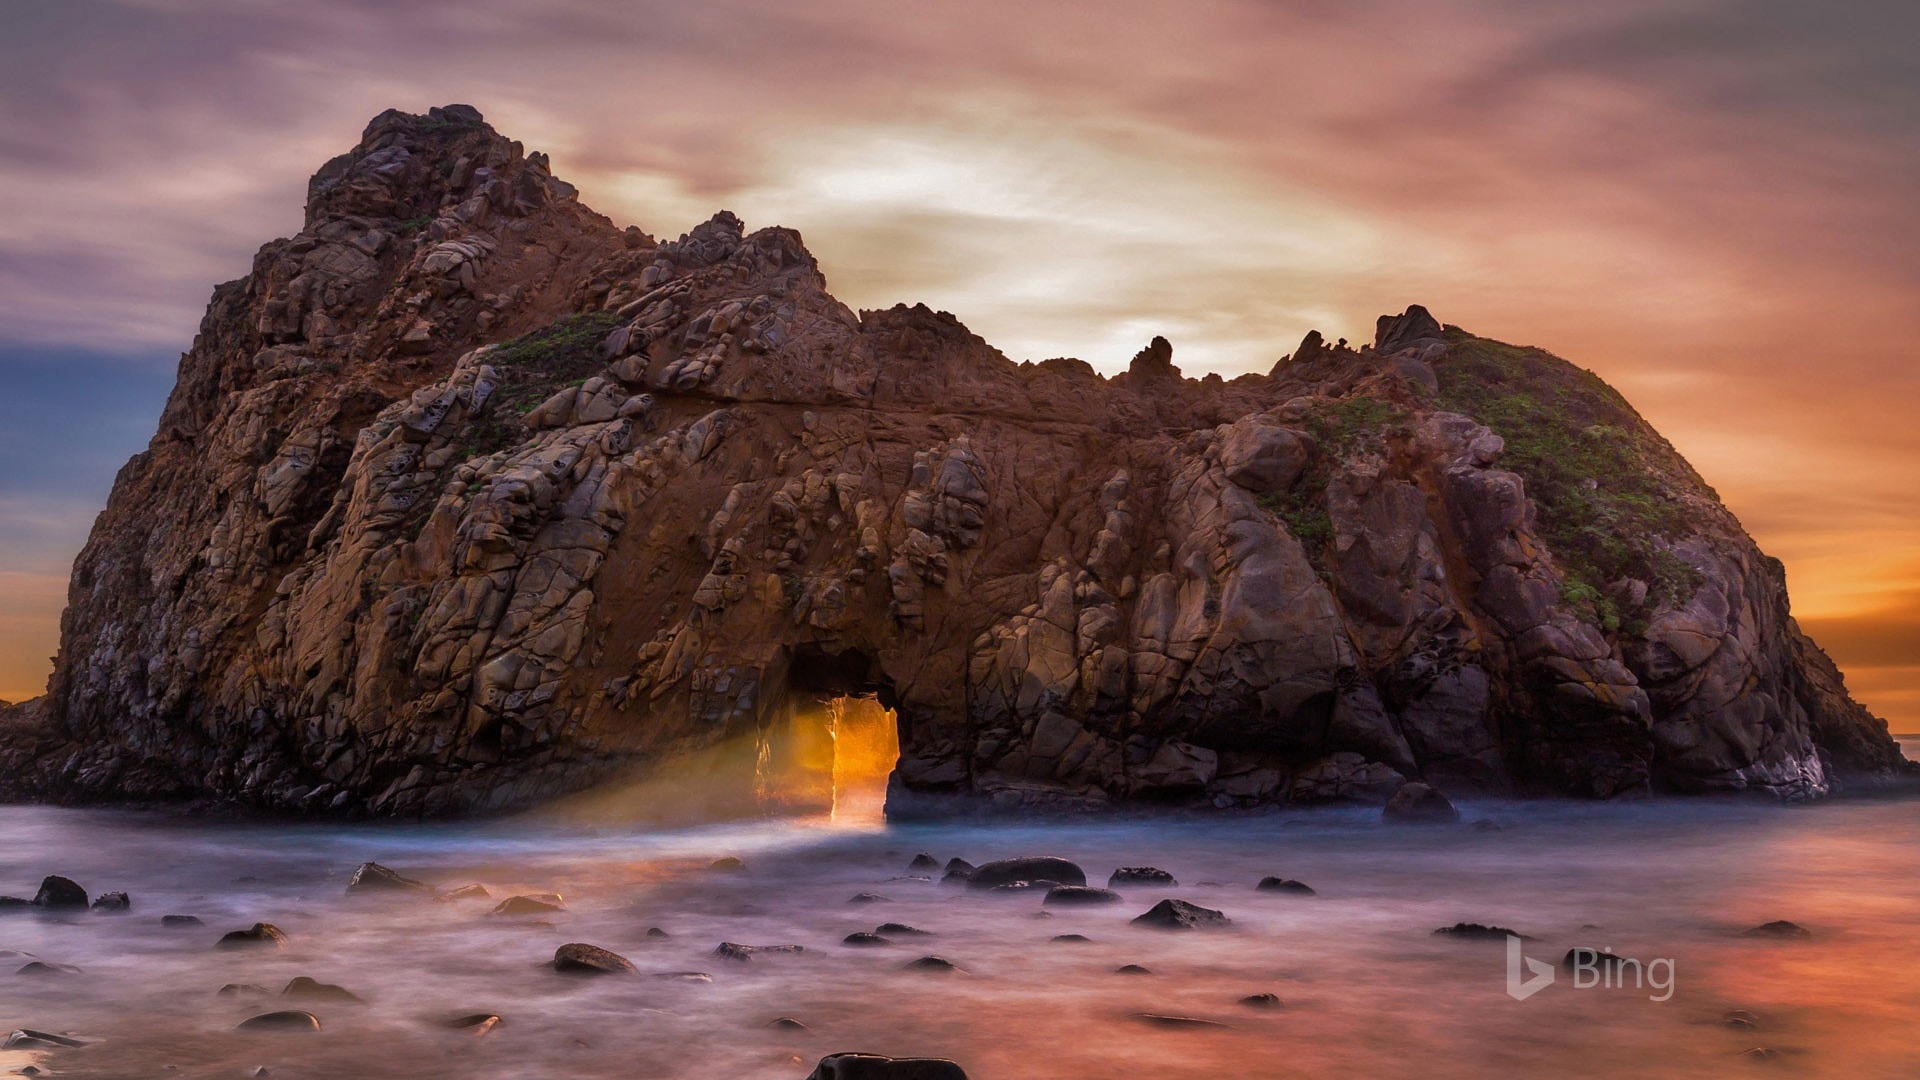 Alienware Iphone Wallpaper California Pfeiffer Beach At Pfeiffer Big Sur State Park